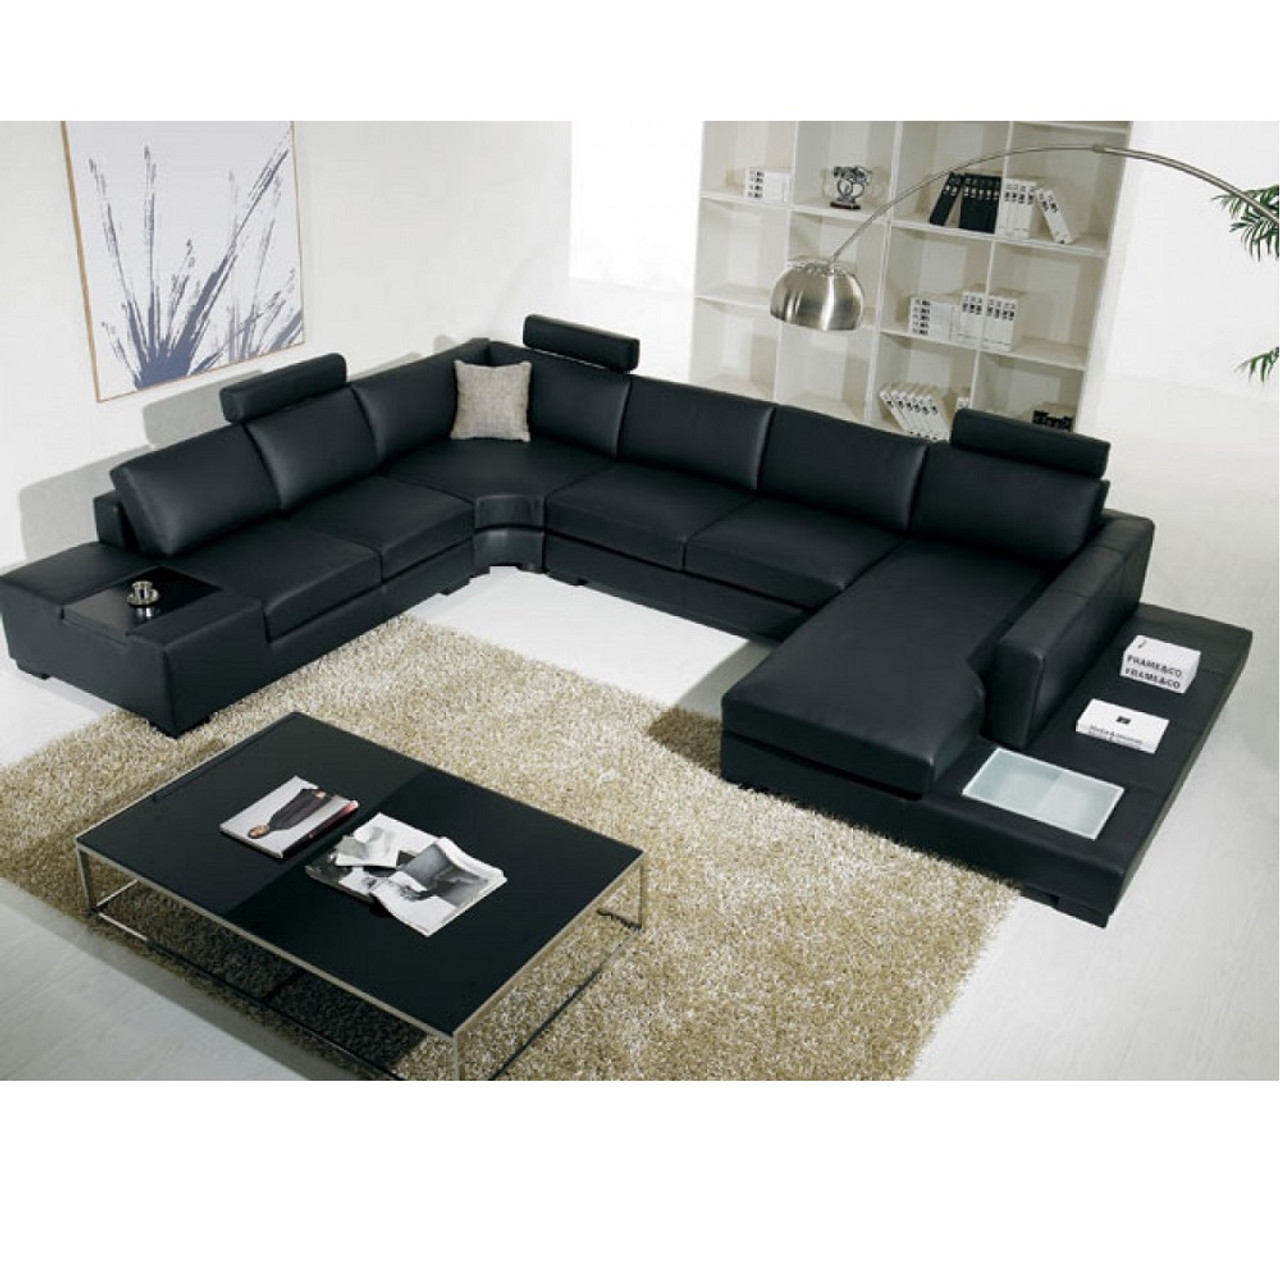 T35  Modern Black Leather Sectional Sofa With Light